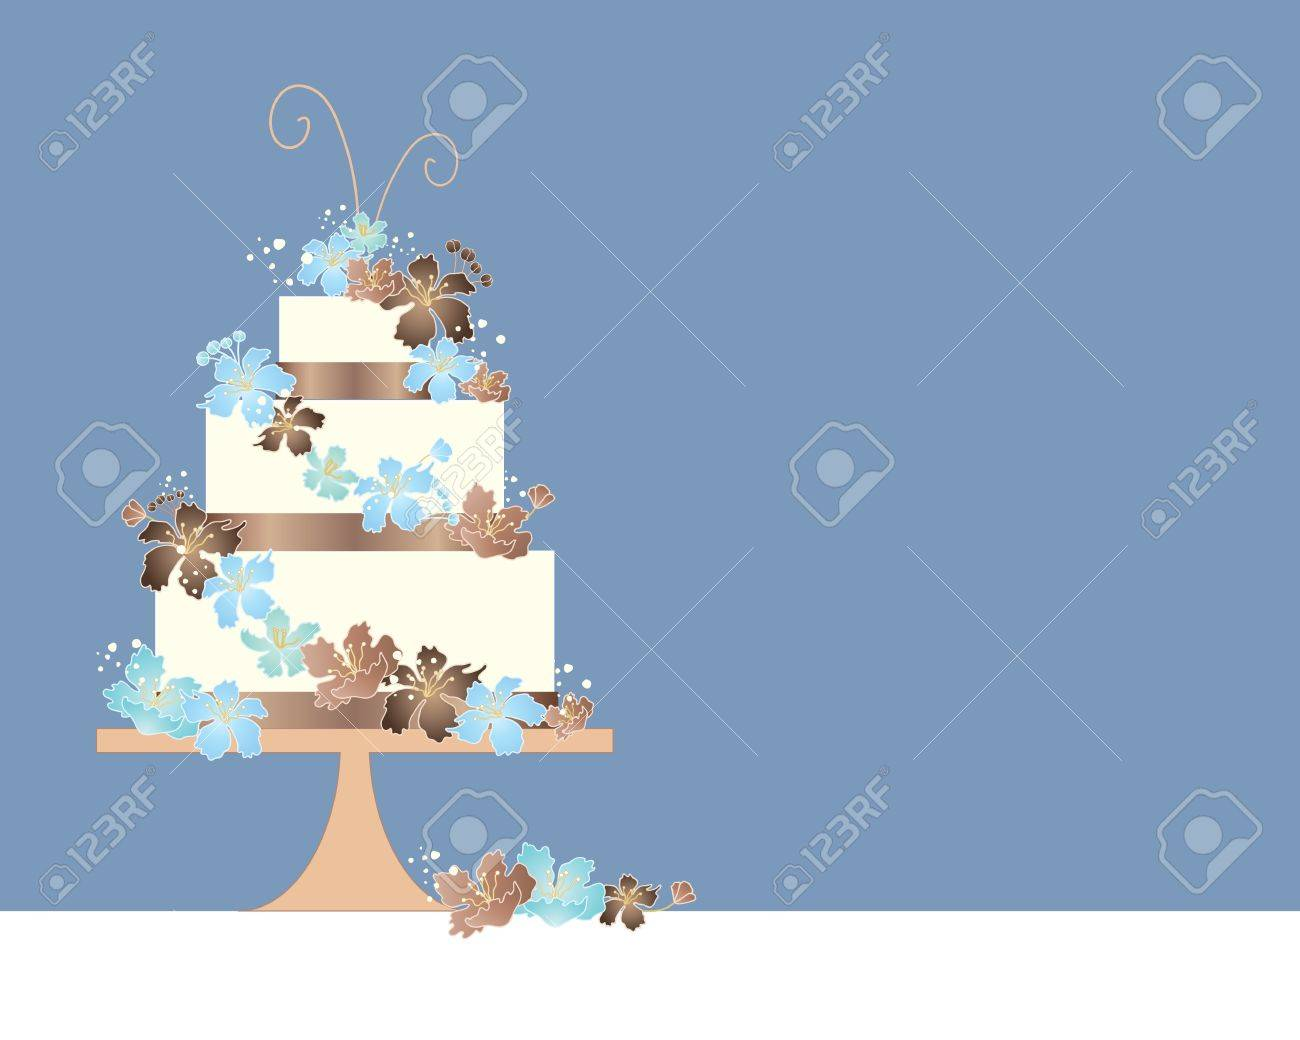 an illustration of a three tier wedding cake greeting card design with blue and brown theme and decorated with matching blossom flowers on a duck egg blue background Stock Vector - 19019464